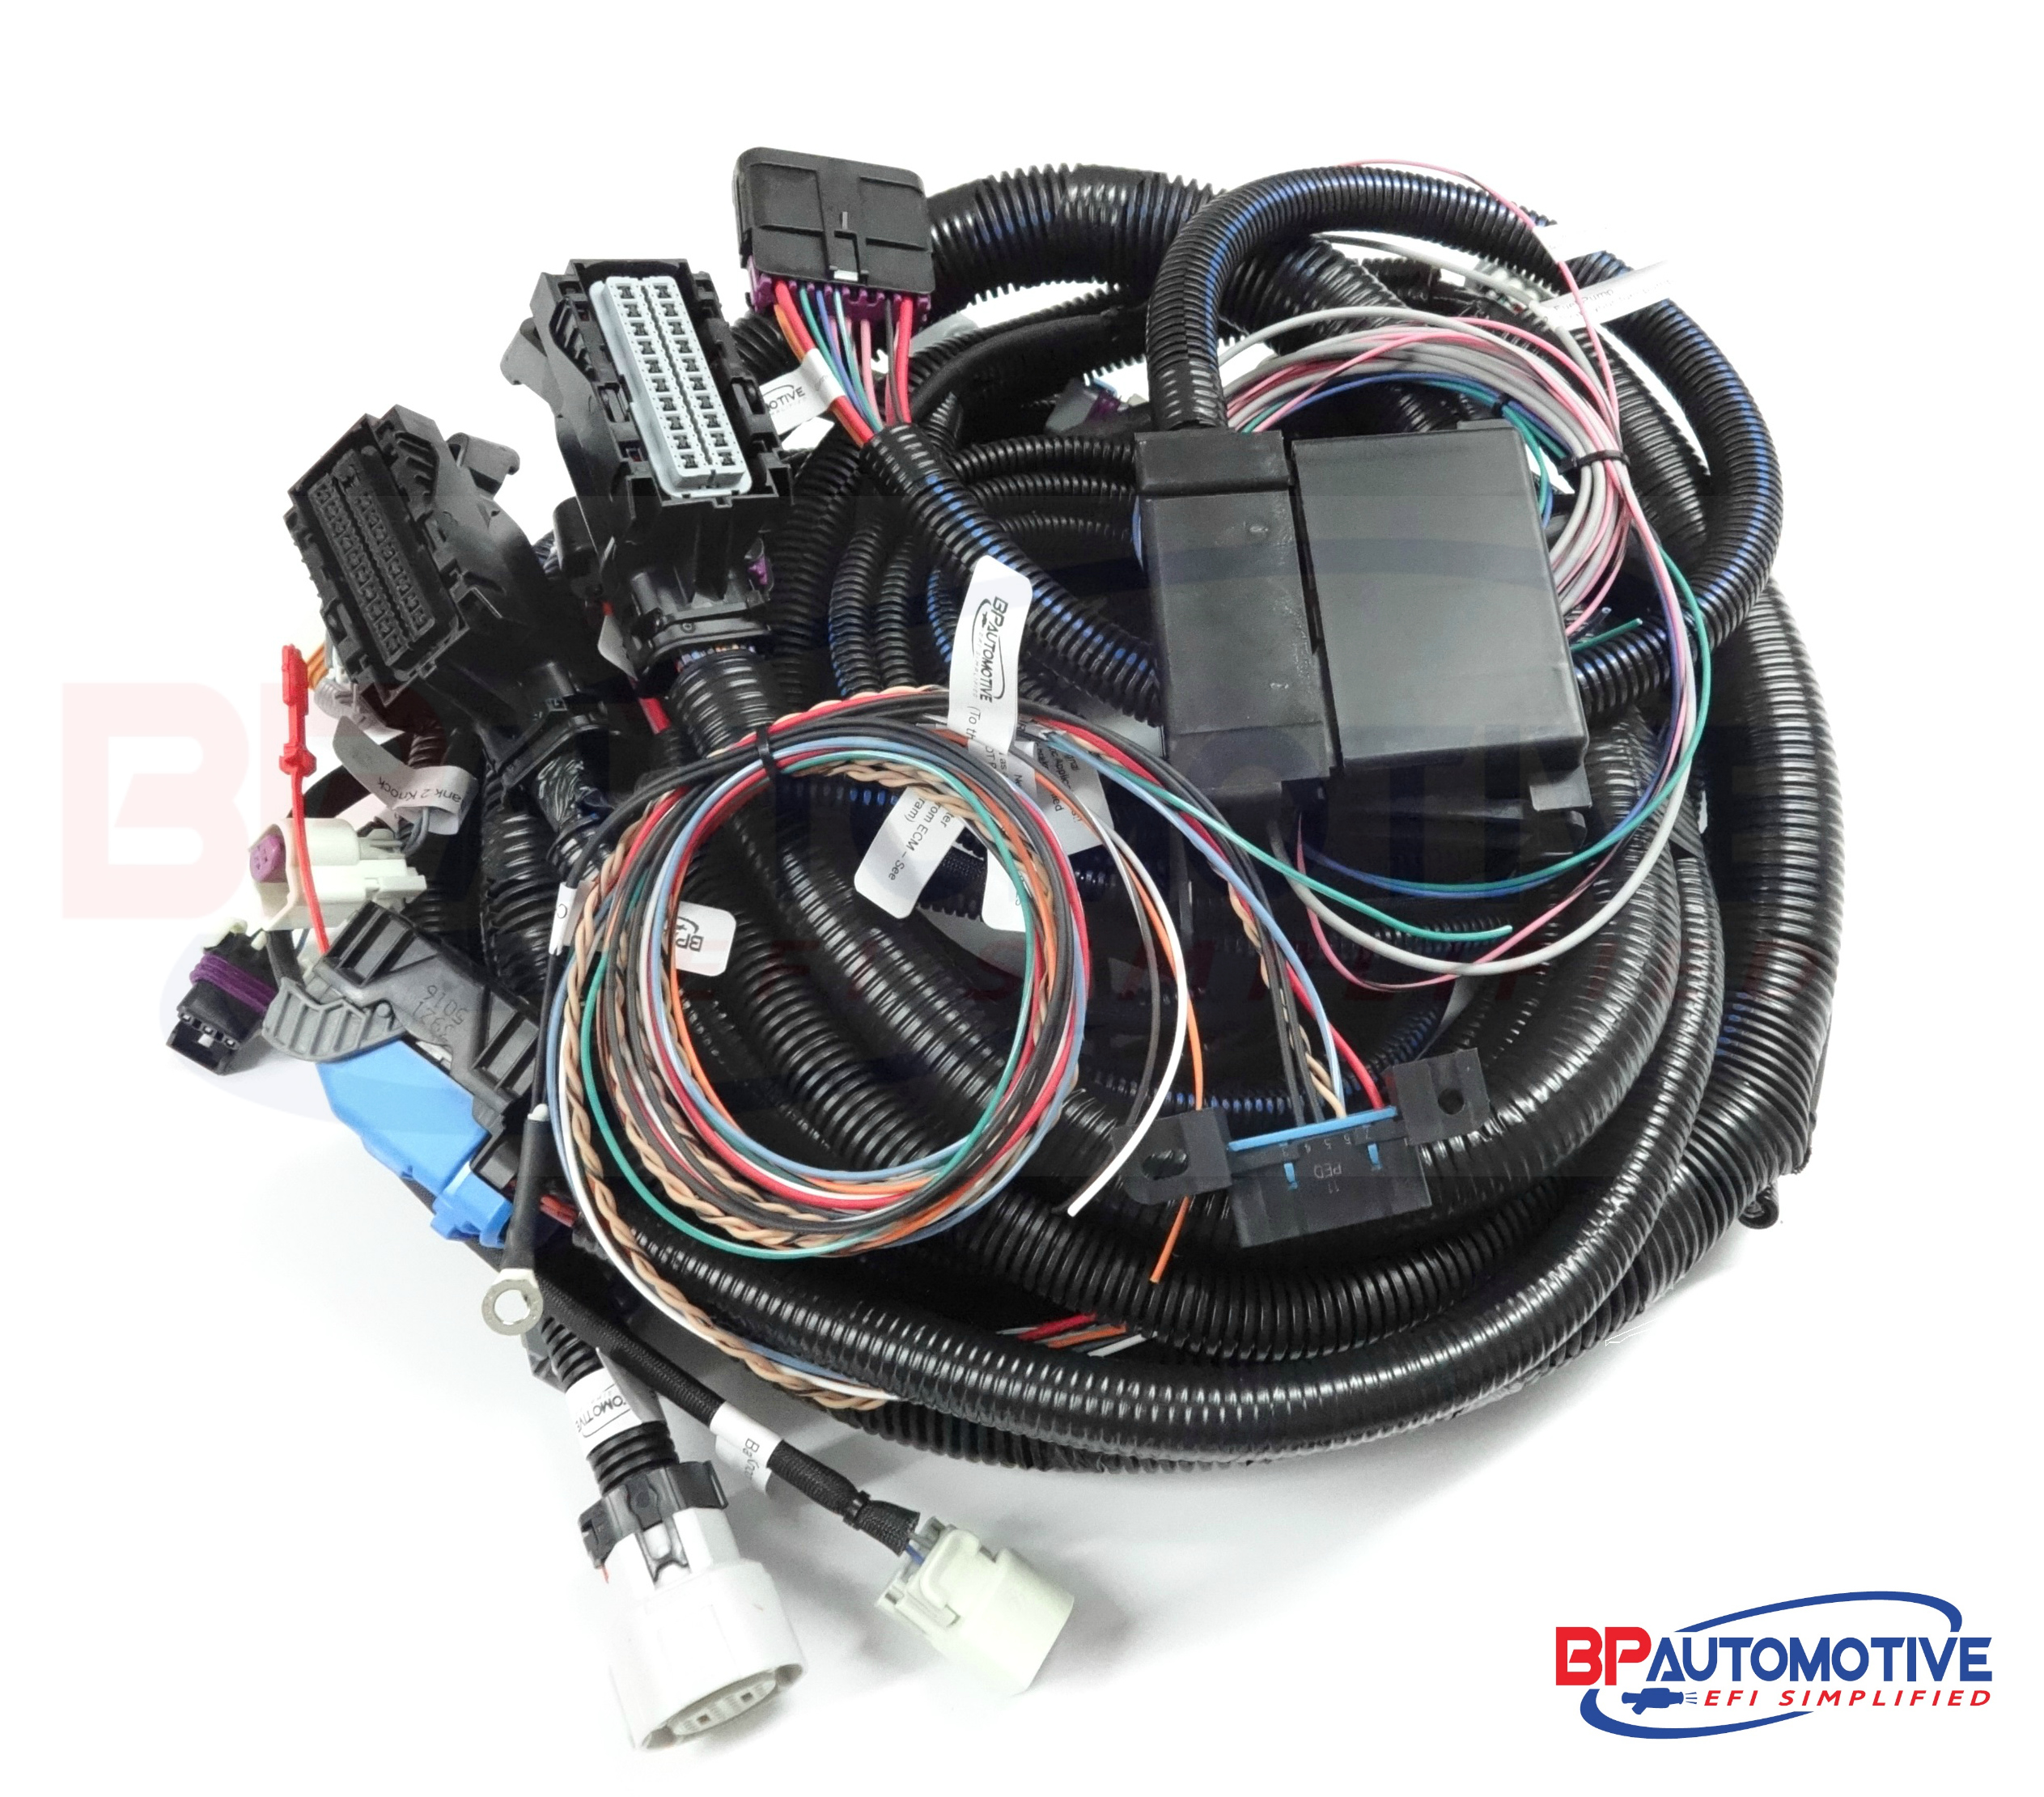 2007 2014 Ls2 Based Gen Iv T56 Tr6060 Or Non Electric Transmission Standalone Ls Swap Harness Wiring Rolled A4 Watermark